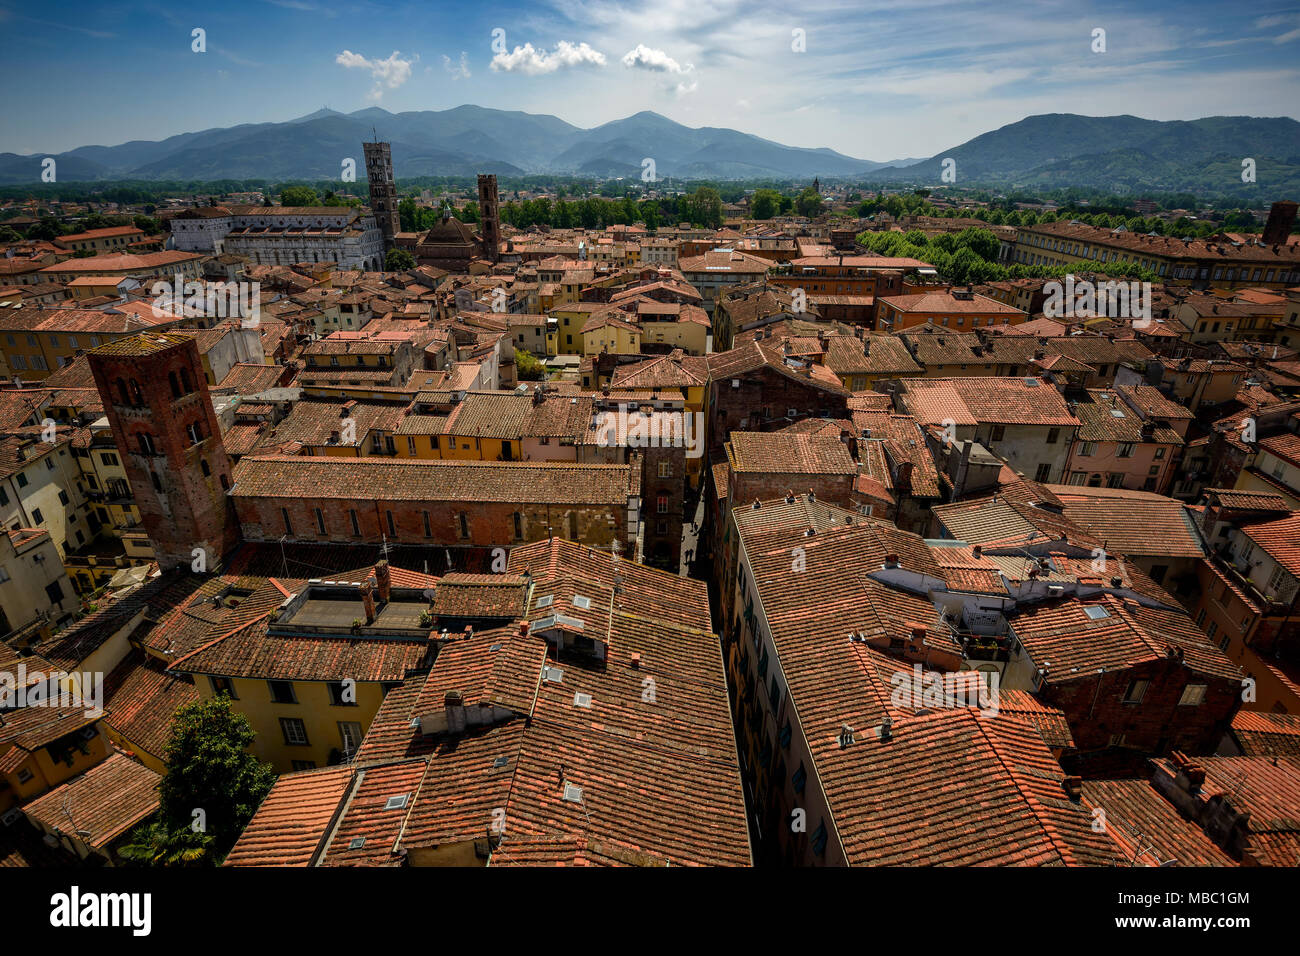 Amazing scenic view of Lucca and Duomo di San Martino from Torre dell Orologio, Lucca, Italy. Stock Photo